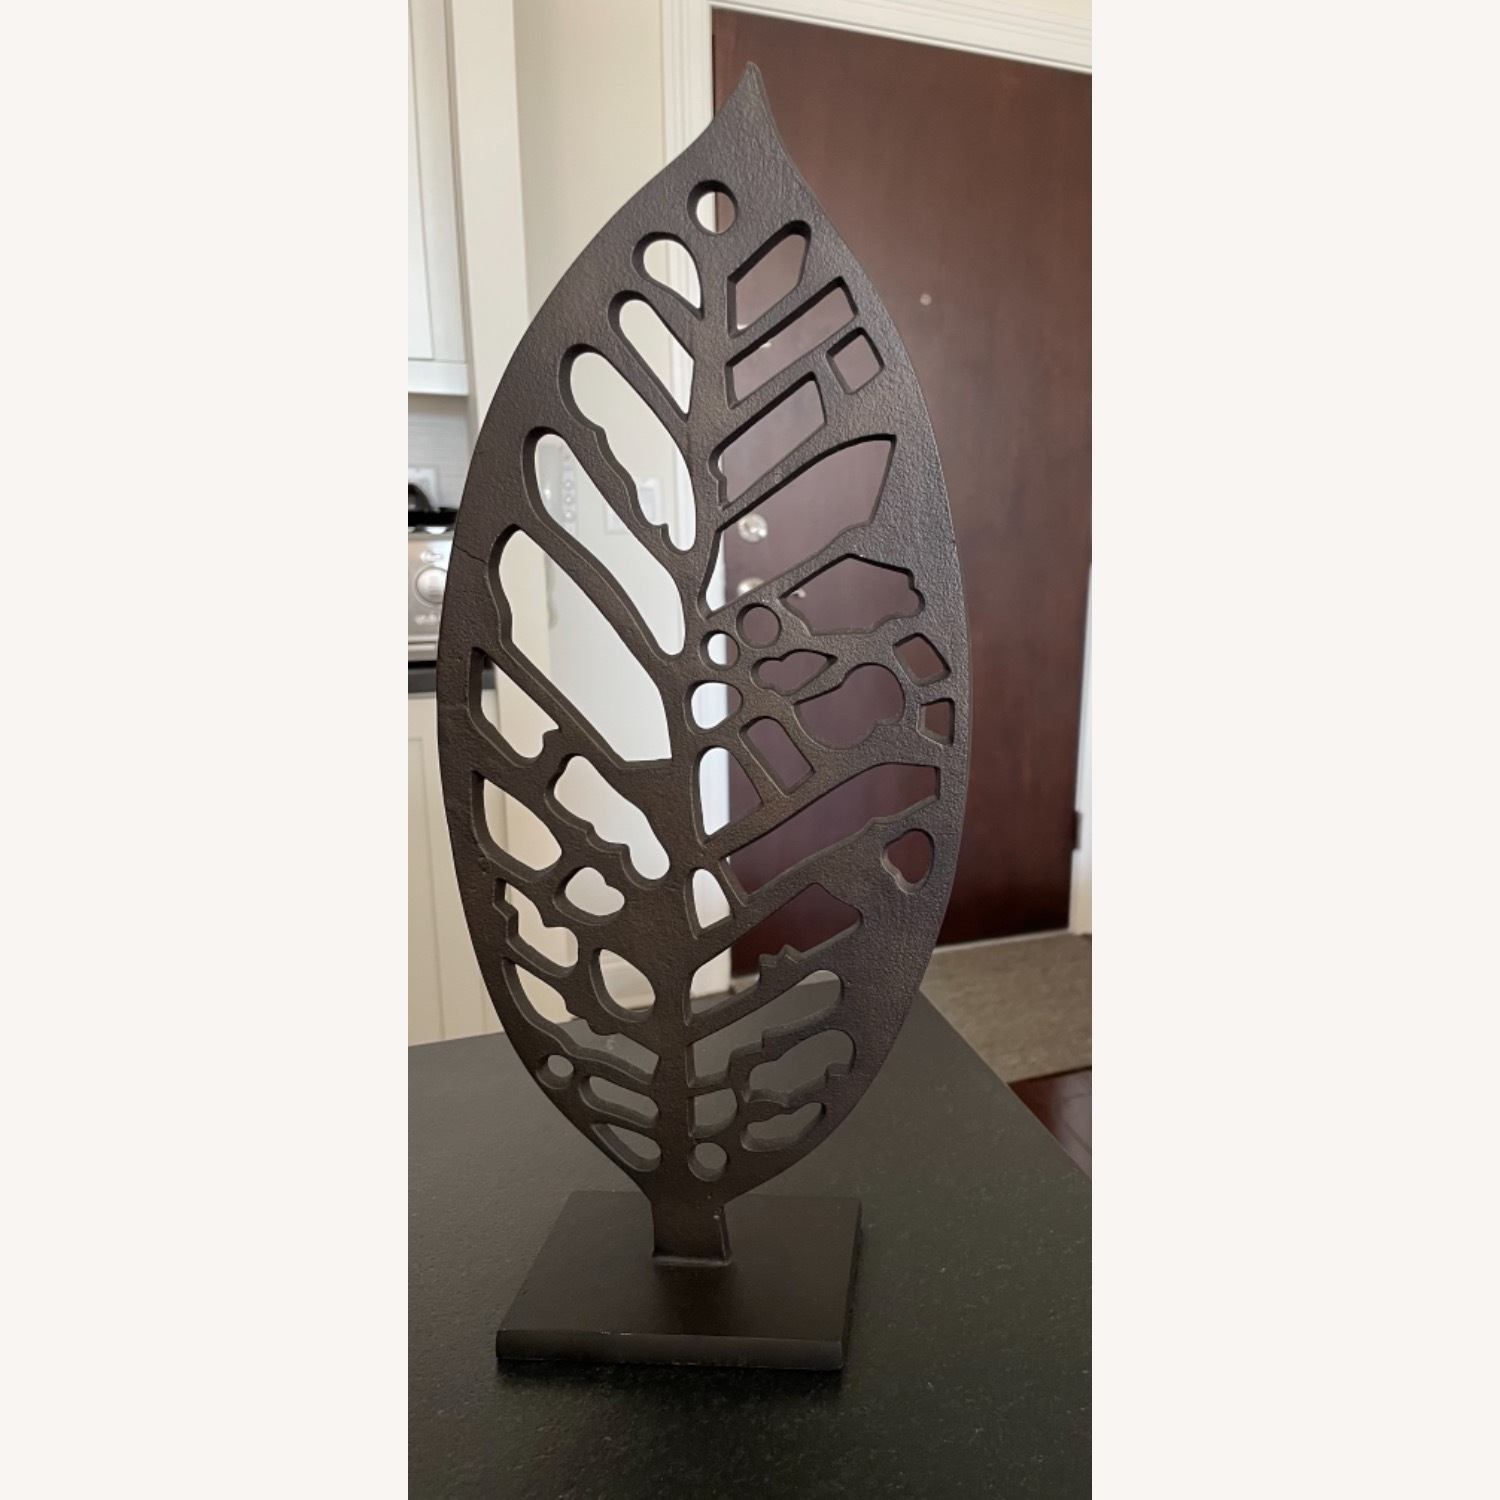 Crate & Barrel Beech Leaf on Stand - image-1